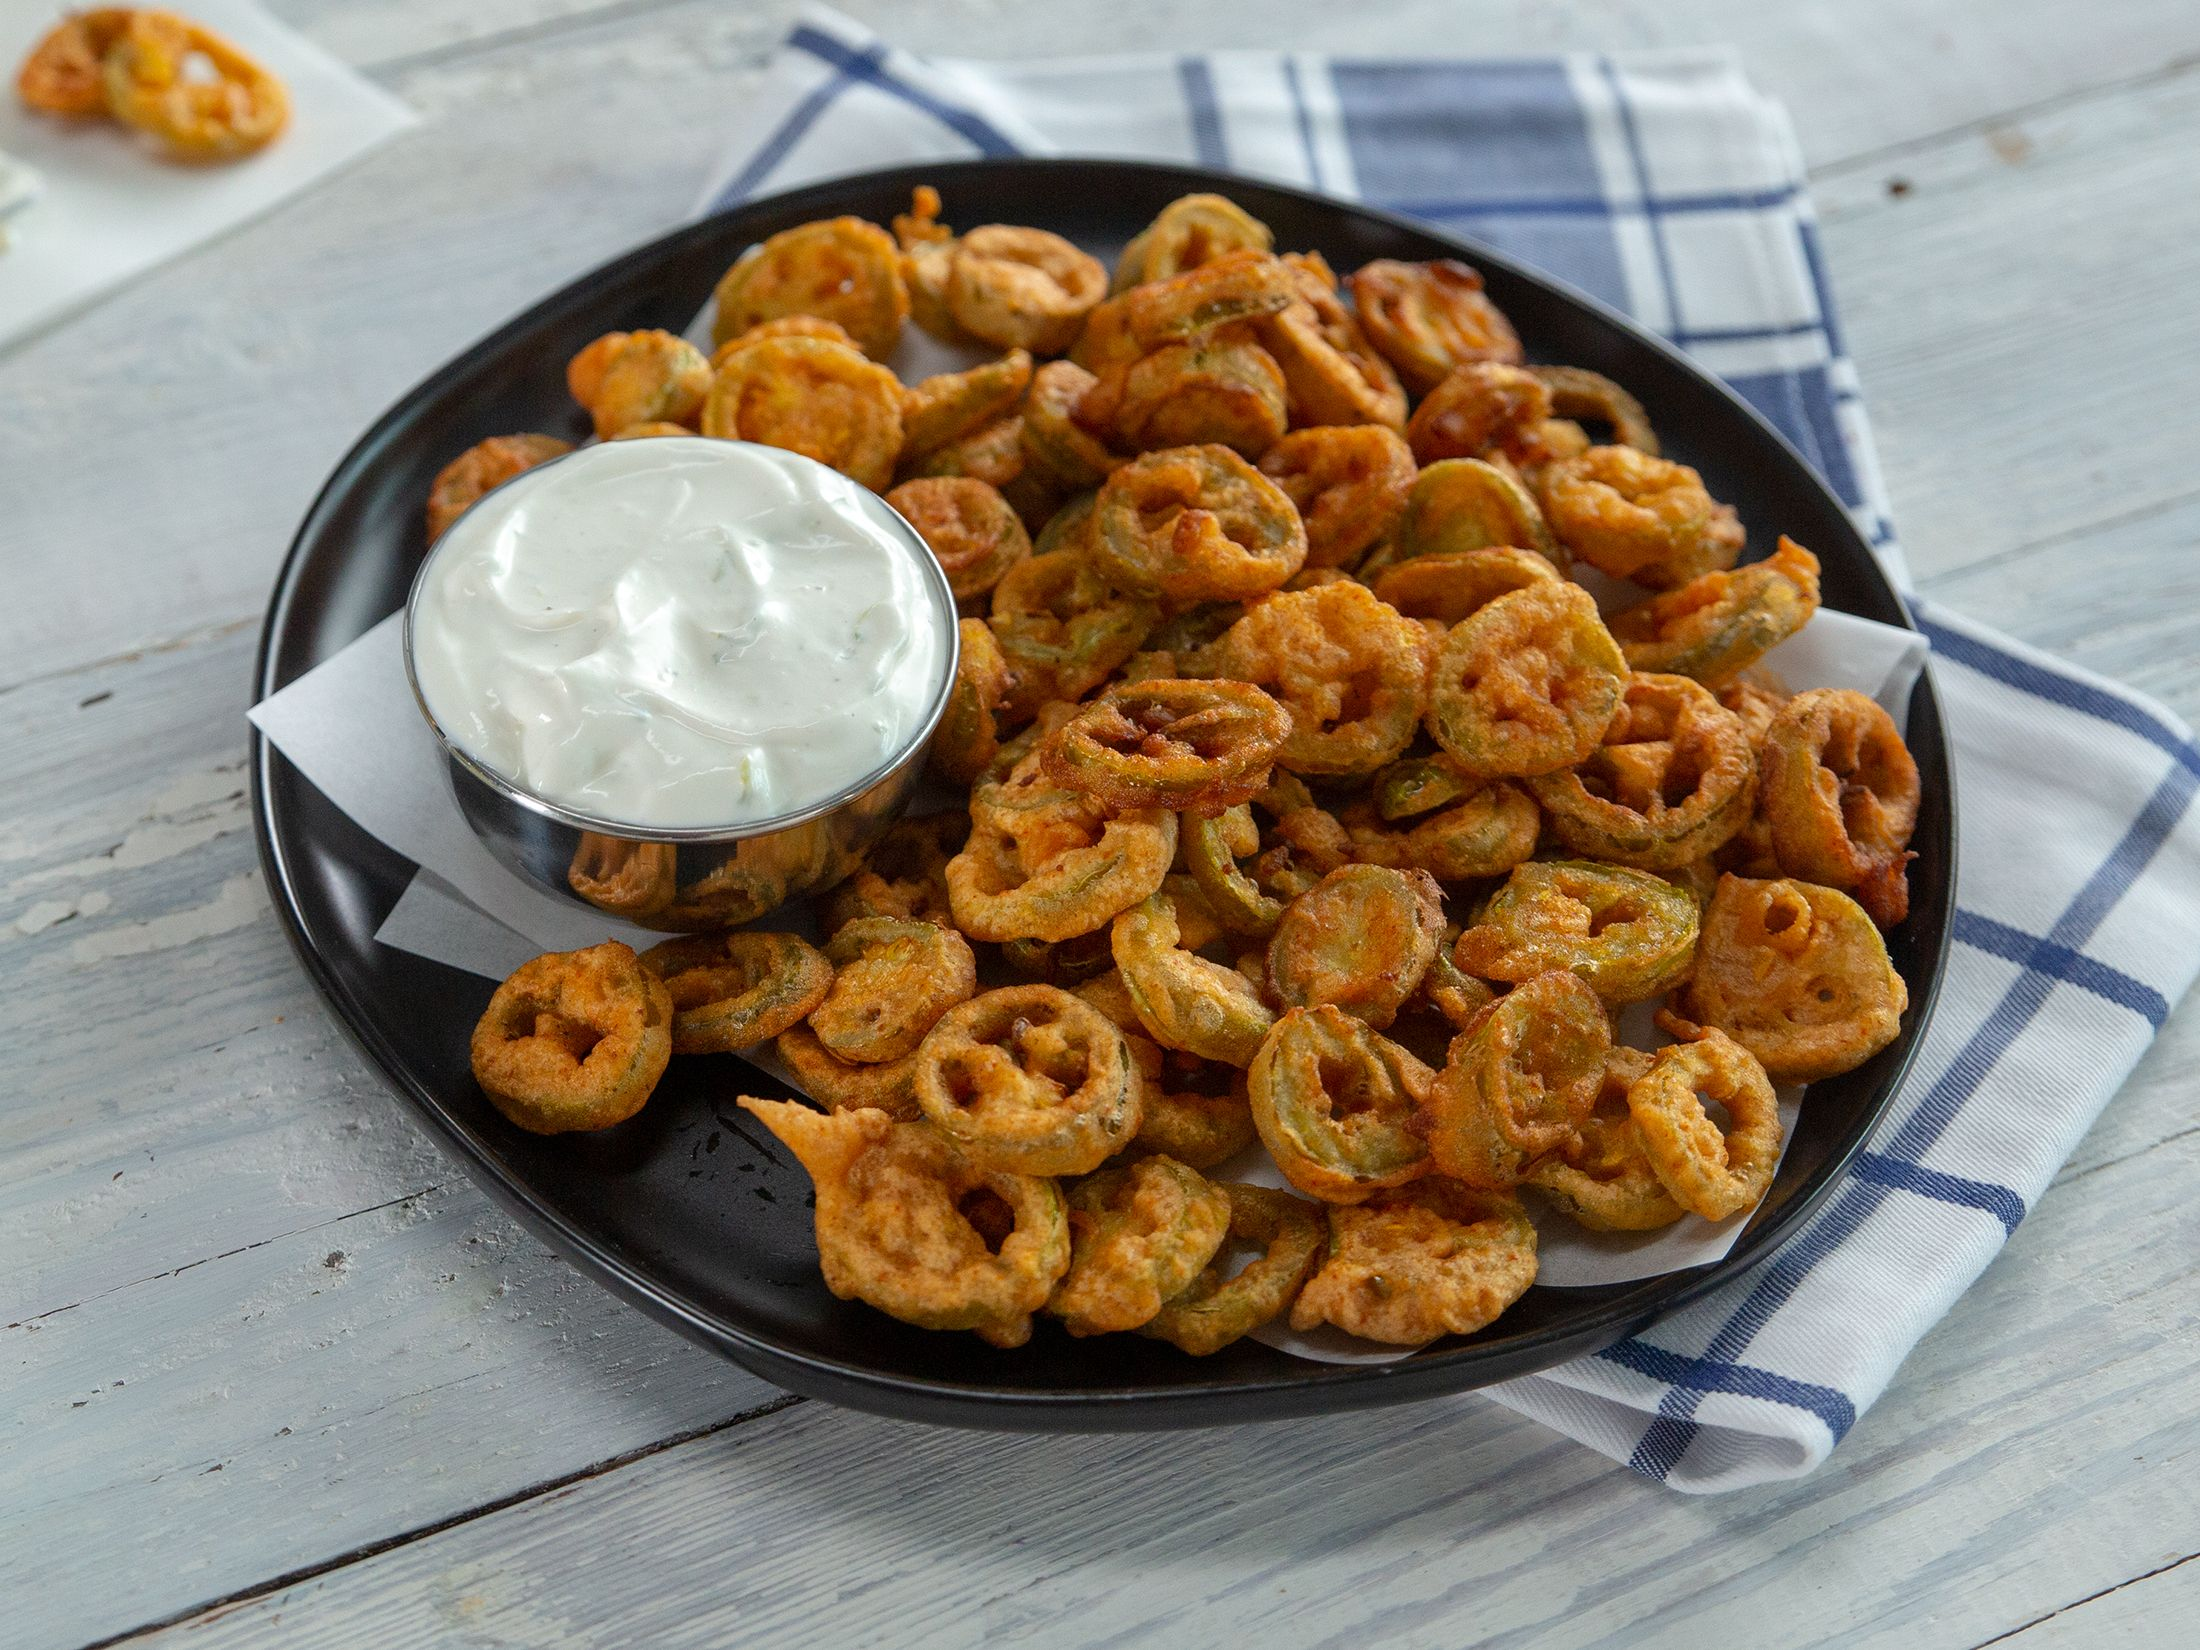 Fried Pickled Jalapenos With Sour Cream Ranch Recipe Recipe In 2020 Recipes Food Pickling Jalapenos